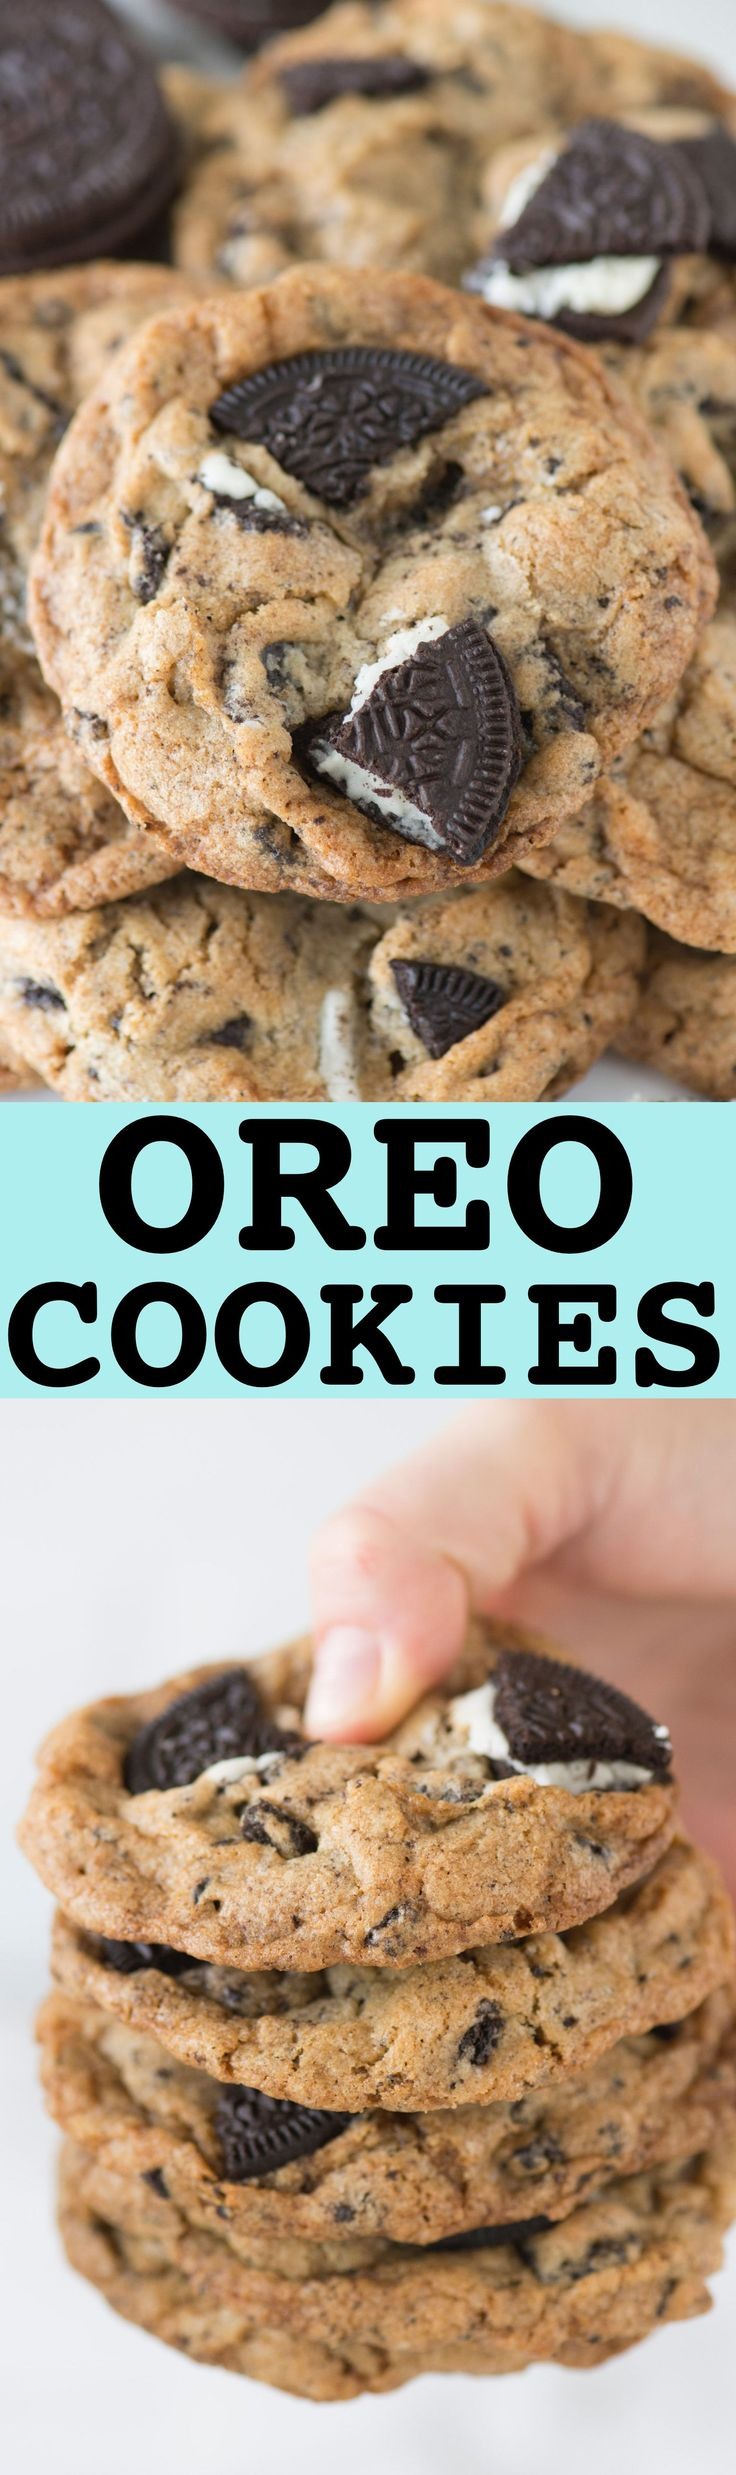 These cookies are loaded with 3 cups of chopped oreos! Some of the best oreo cookies or cookies & cream cookies we've tried! Crispy on the outside and chewy on the inside!